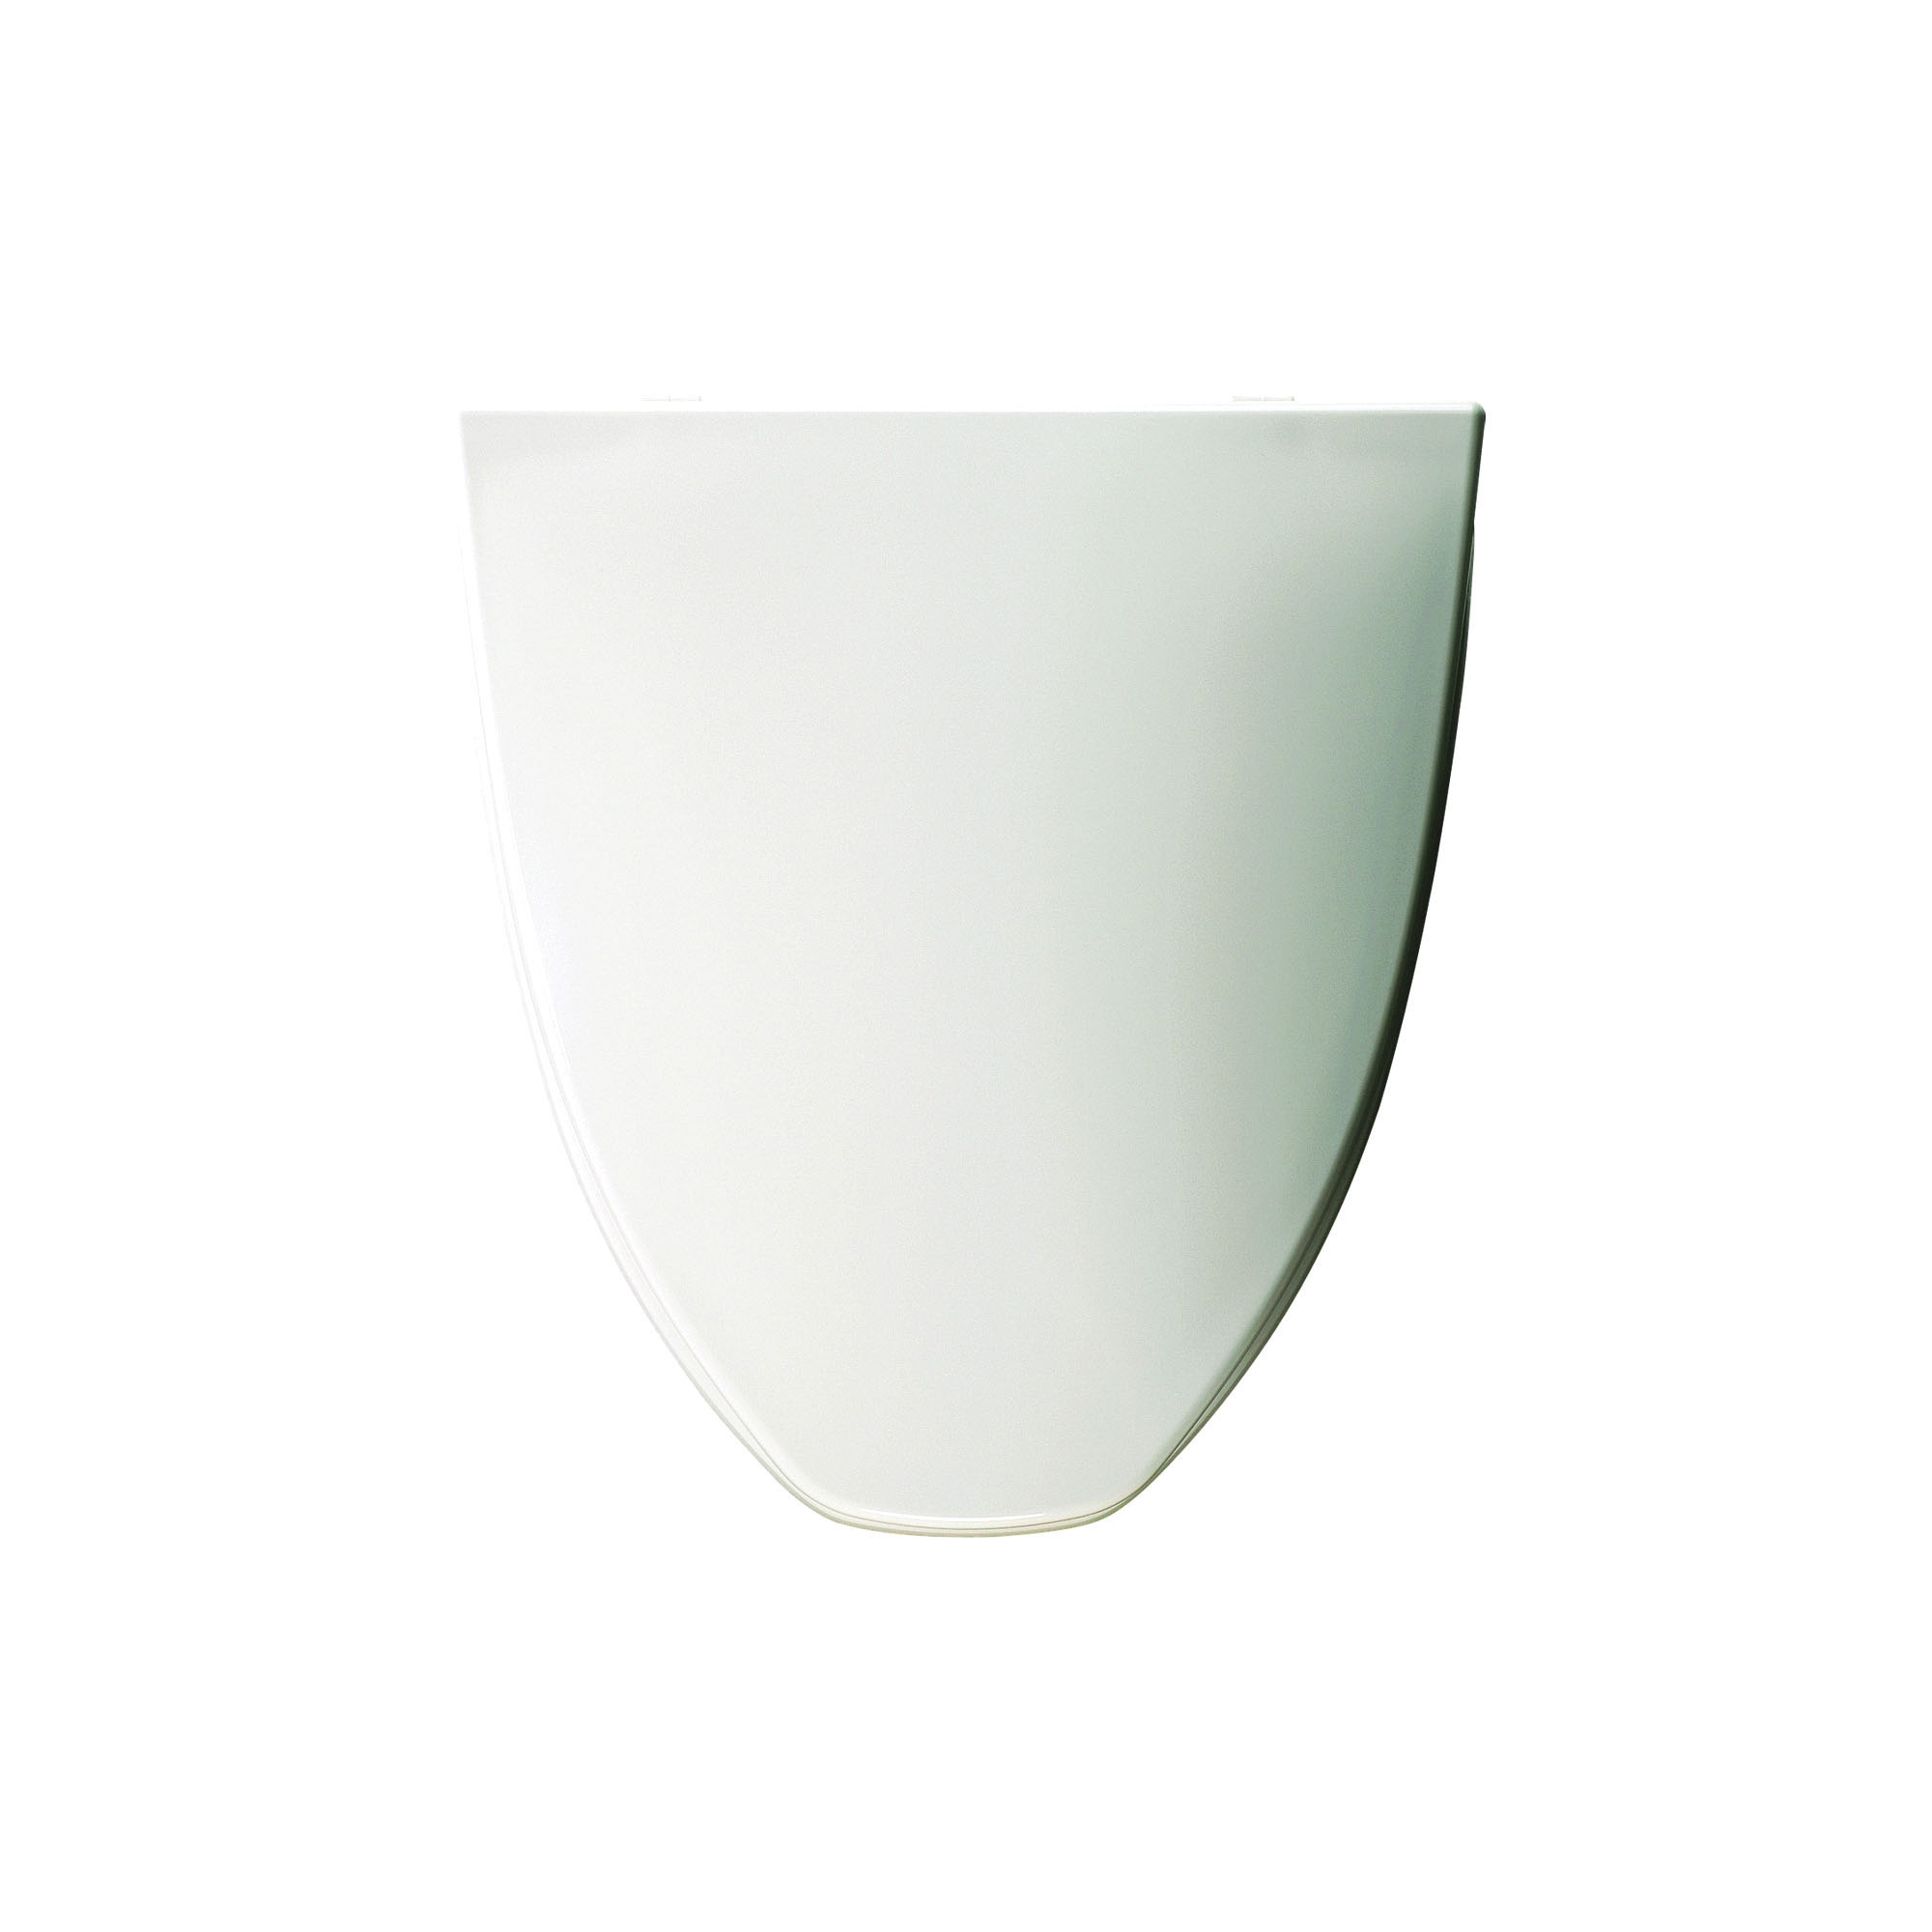 Bemis® LC212 000 Toilet Seat With Cover, Elongated Bowl, Closed Front, Plastic, White, Domestic